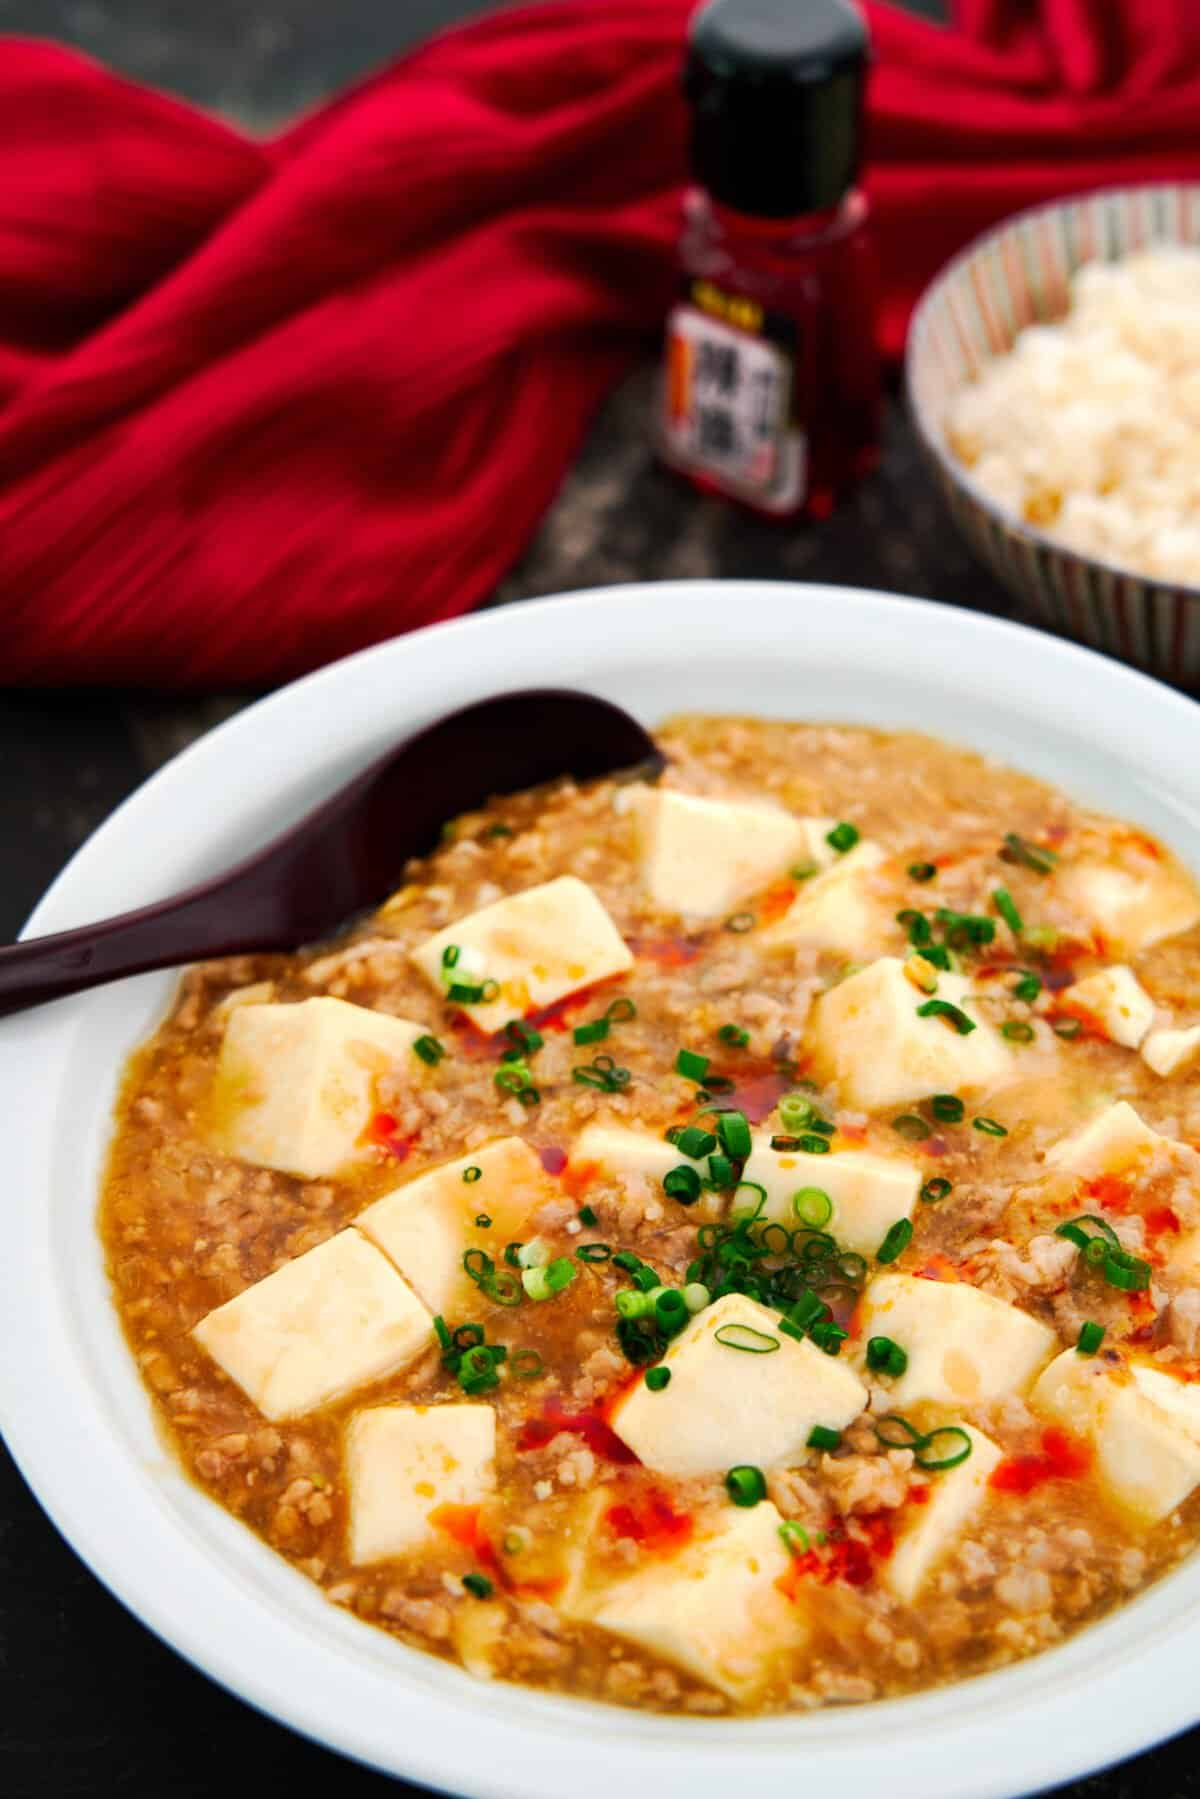 With silky tofu in savory meat sauce, this Japanese Mapo Tofu is an easy mild alternative to the classic Sichuan dish.